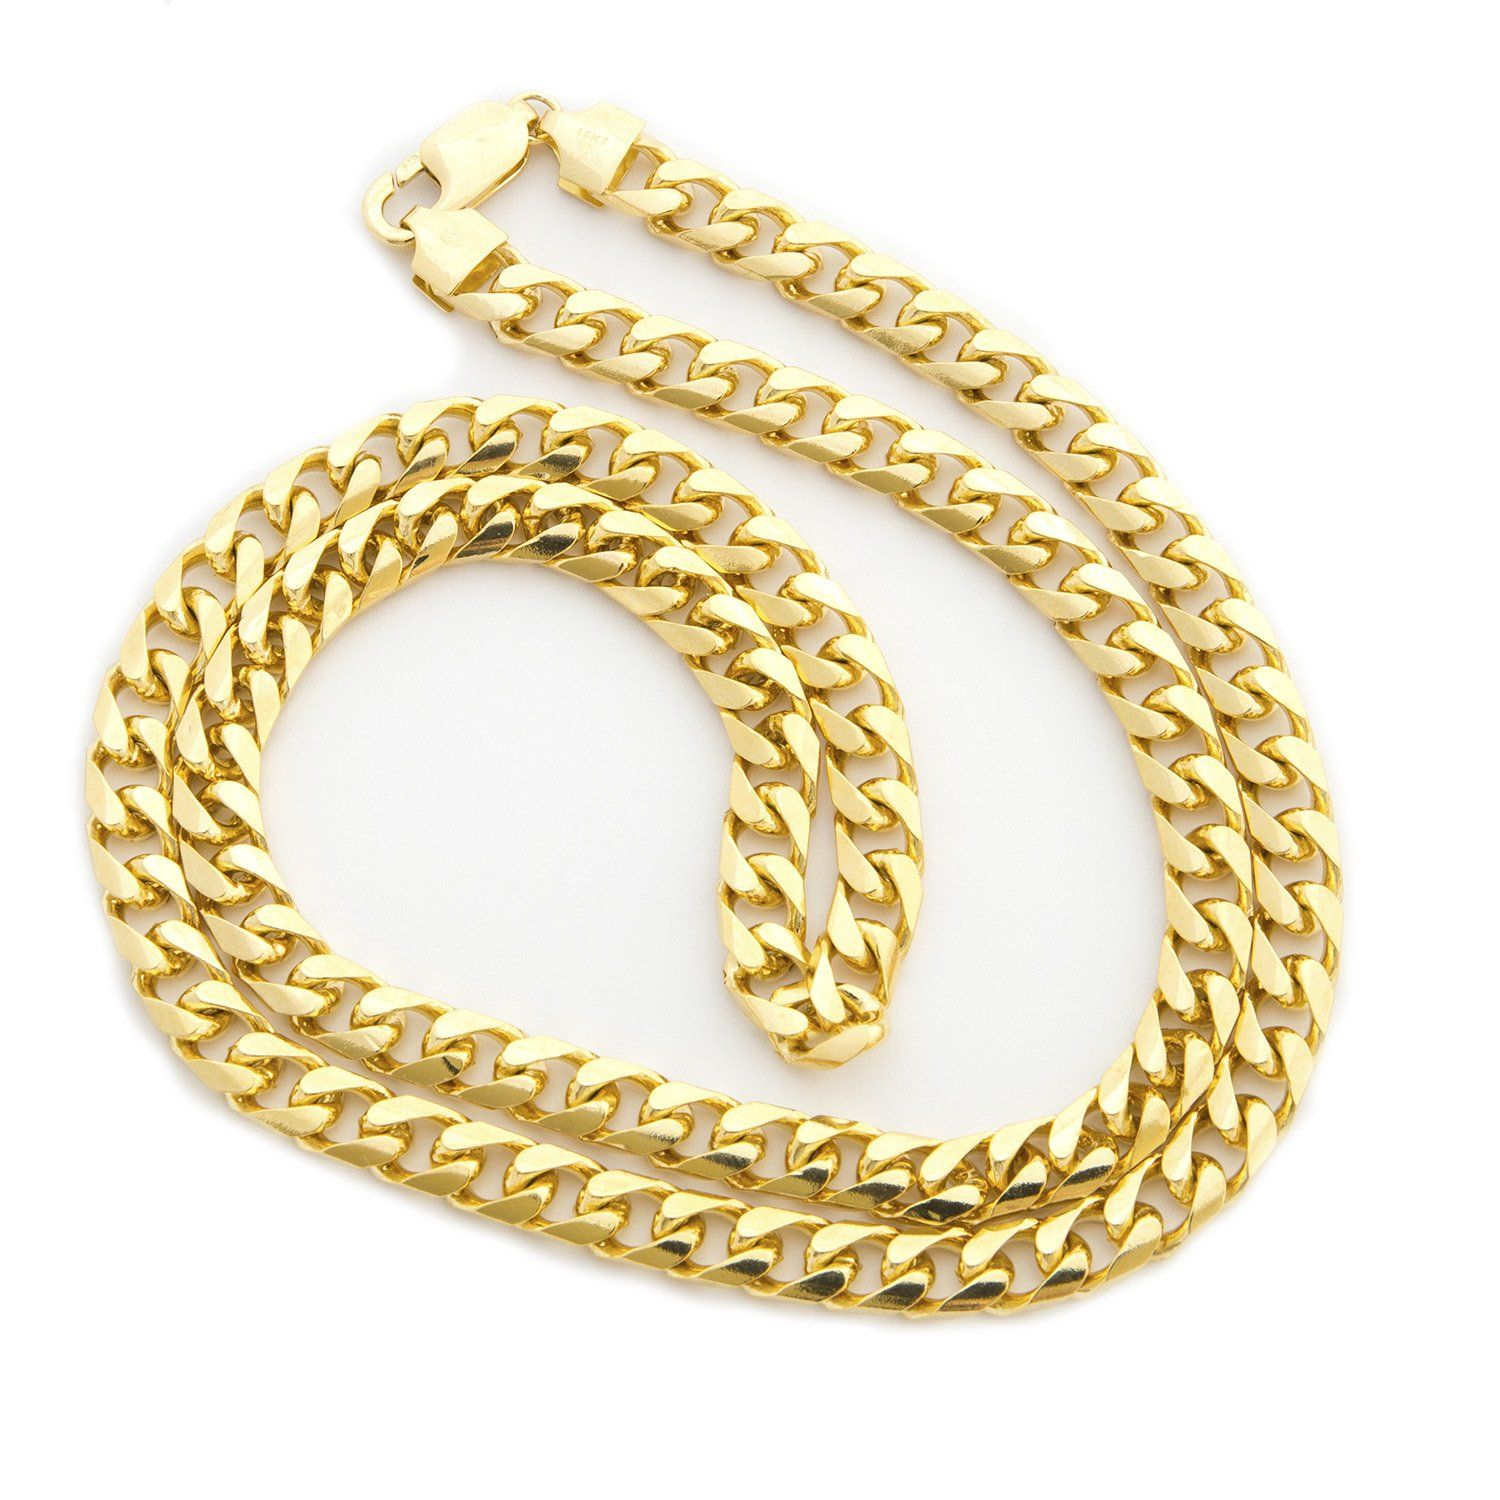 Solid 14k Yellow Gold 6 5mm Heavy Miami Cuban Link Chain